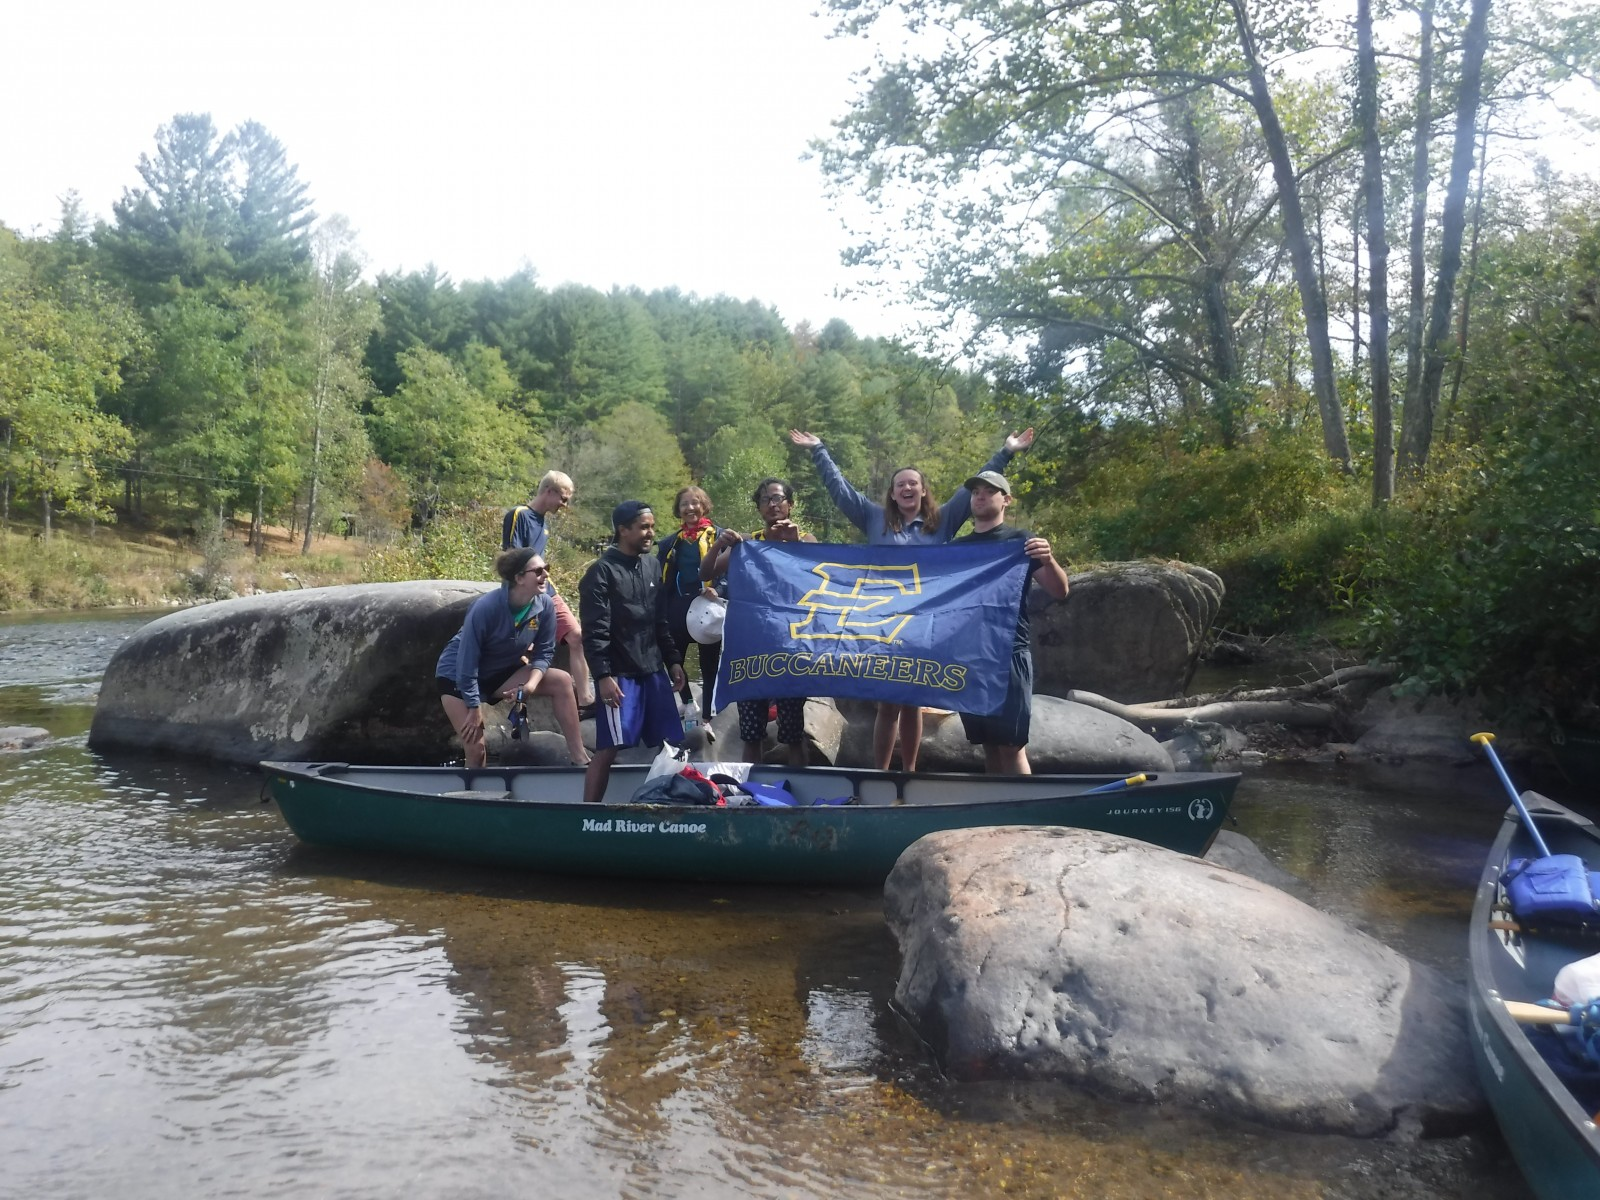 Group of students canoeing